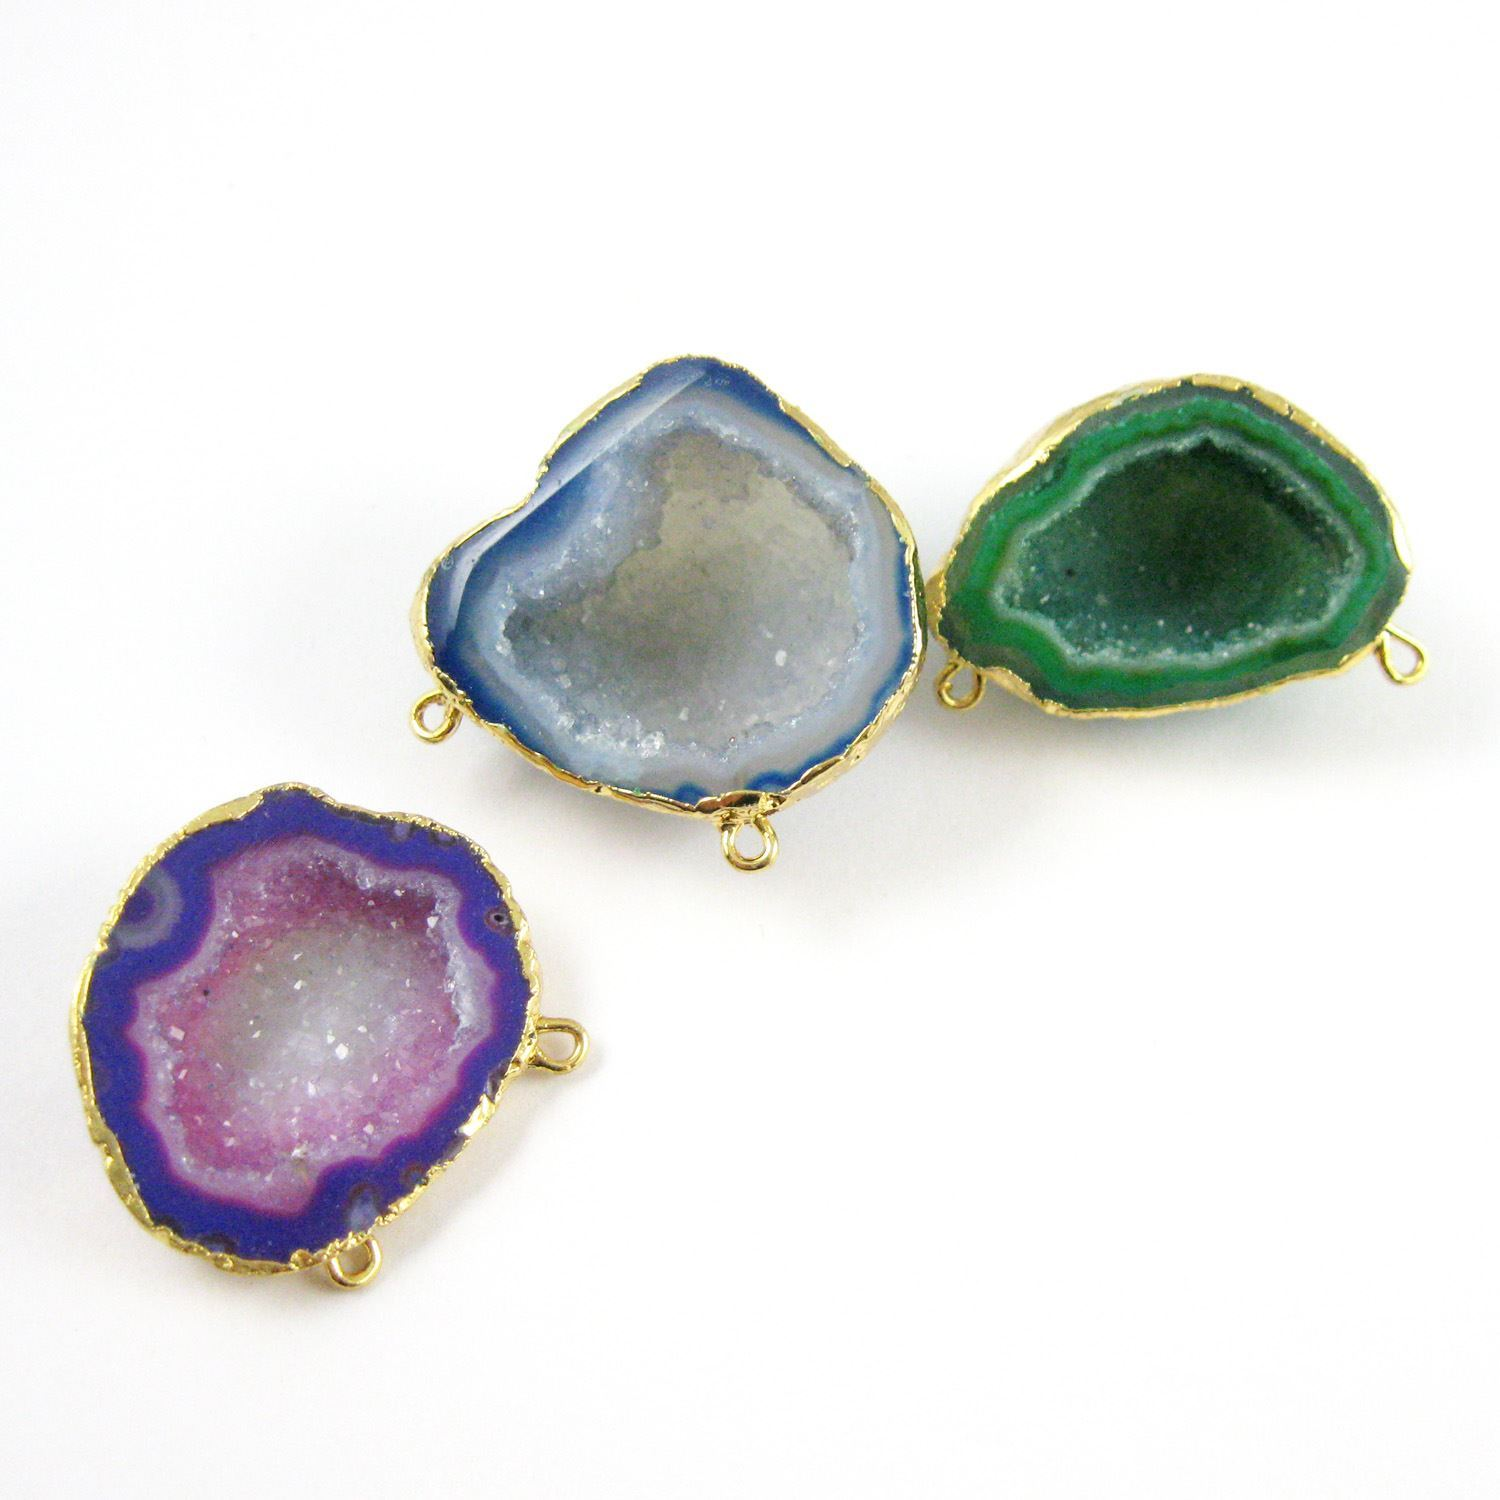 Druzy Agate Geode Connector Pendant,  Purple Nature Agate Gold Edging Small Geode Pendant